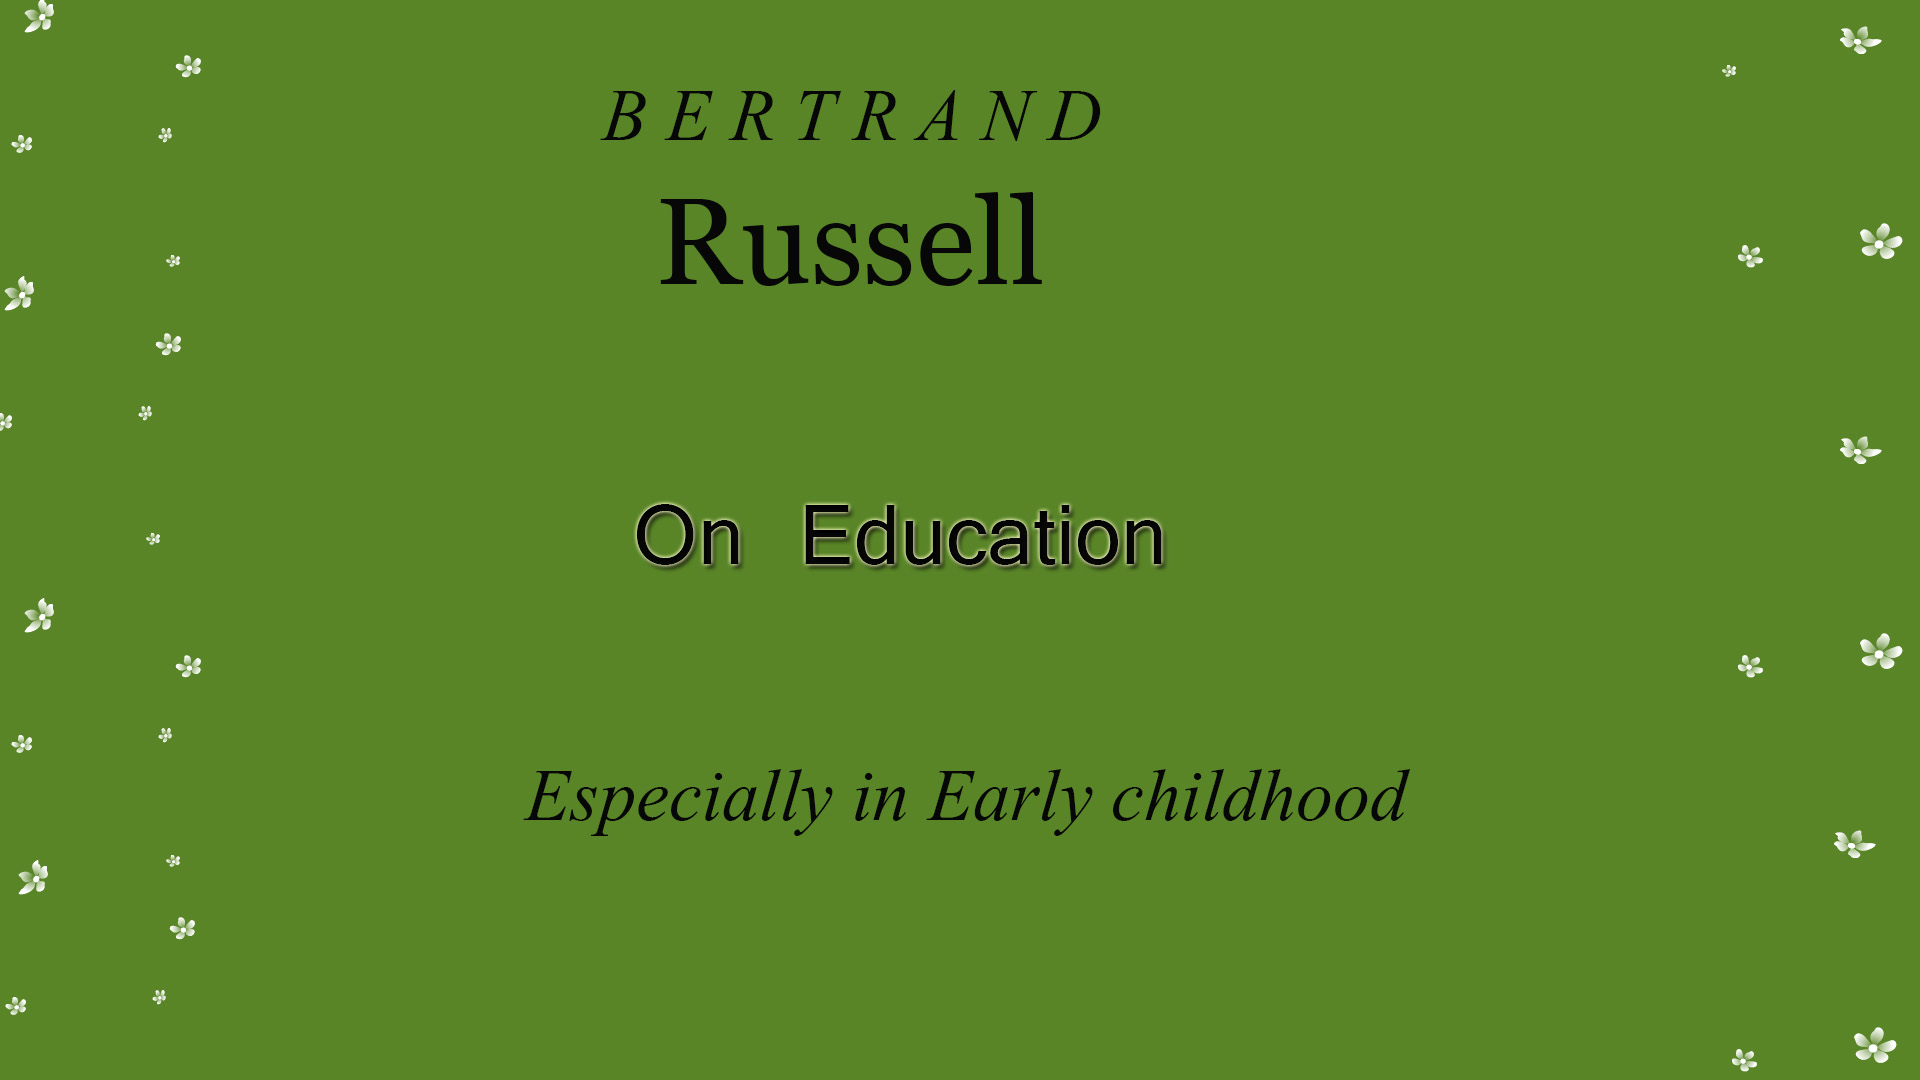 on-education-by-Bertrand-Russell-especially-in-early-education